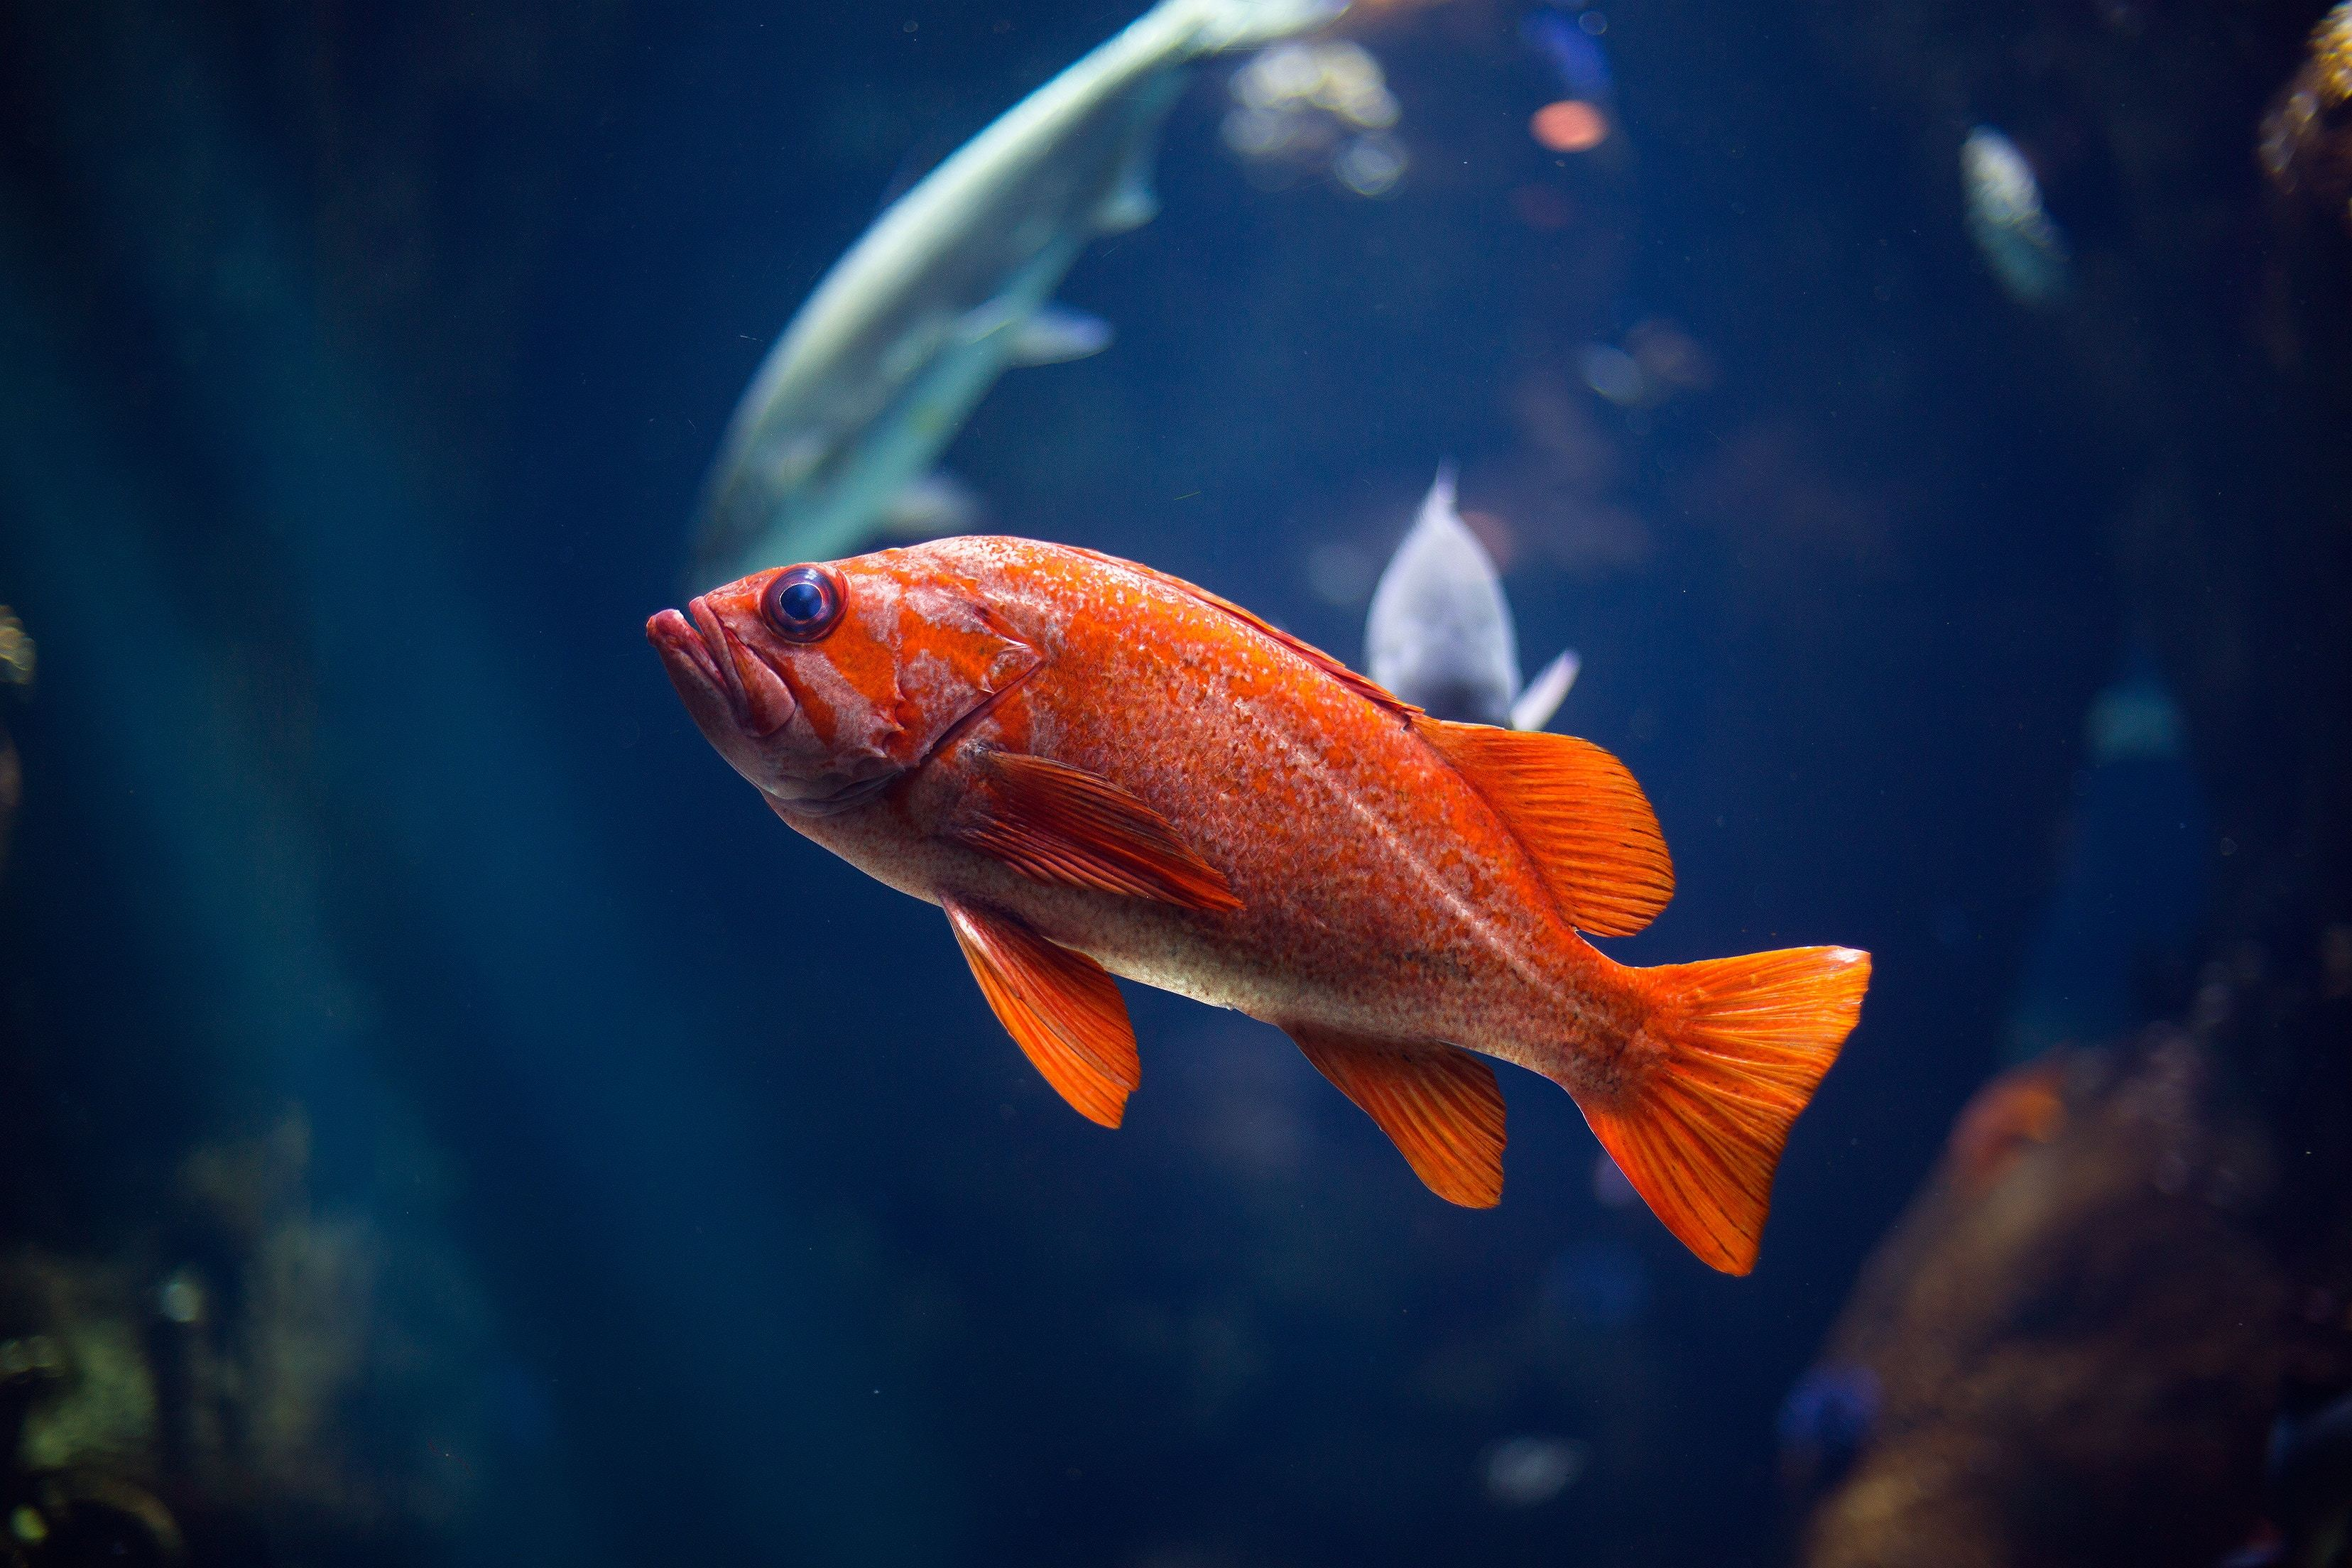 Image: Fish, scales, fins, eyes, water, light